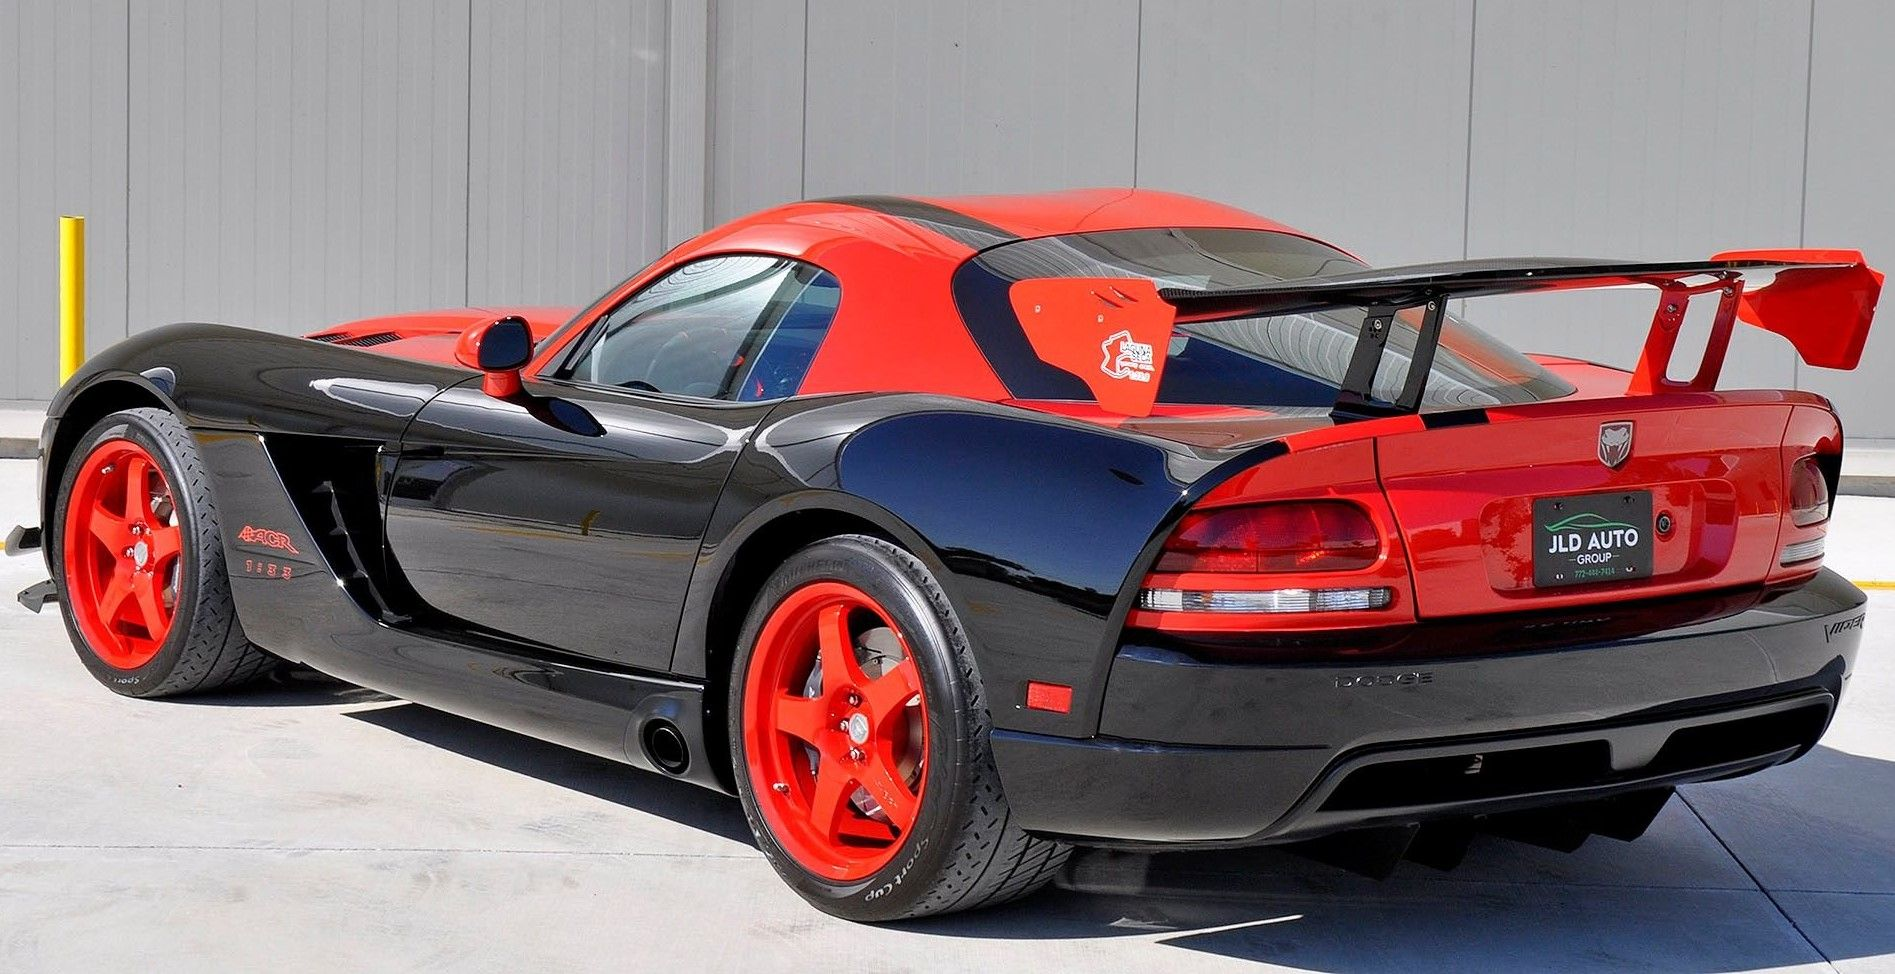 Invest In This 2010 Dodge Viper ACR 1:33 Edition